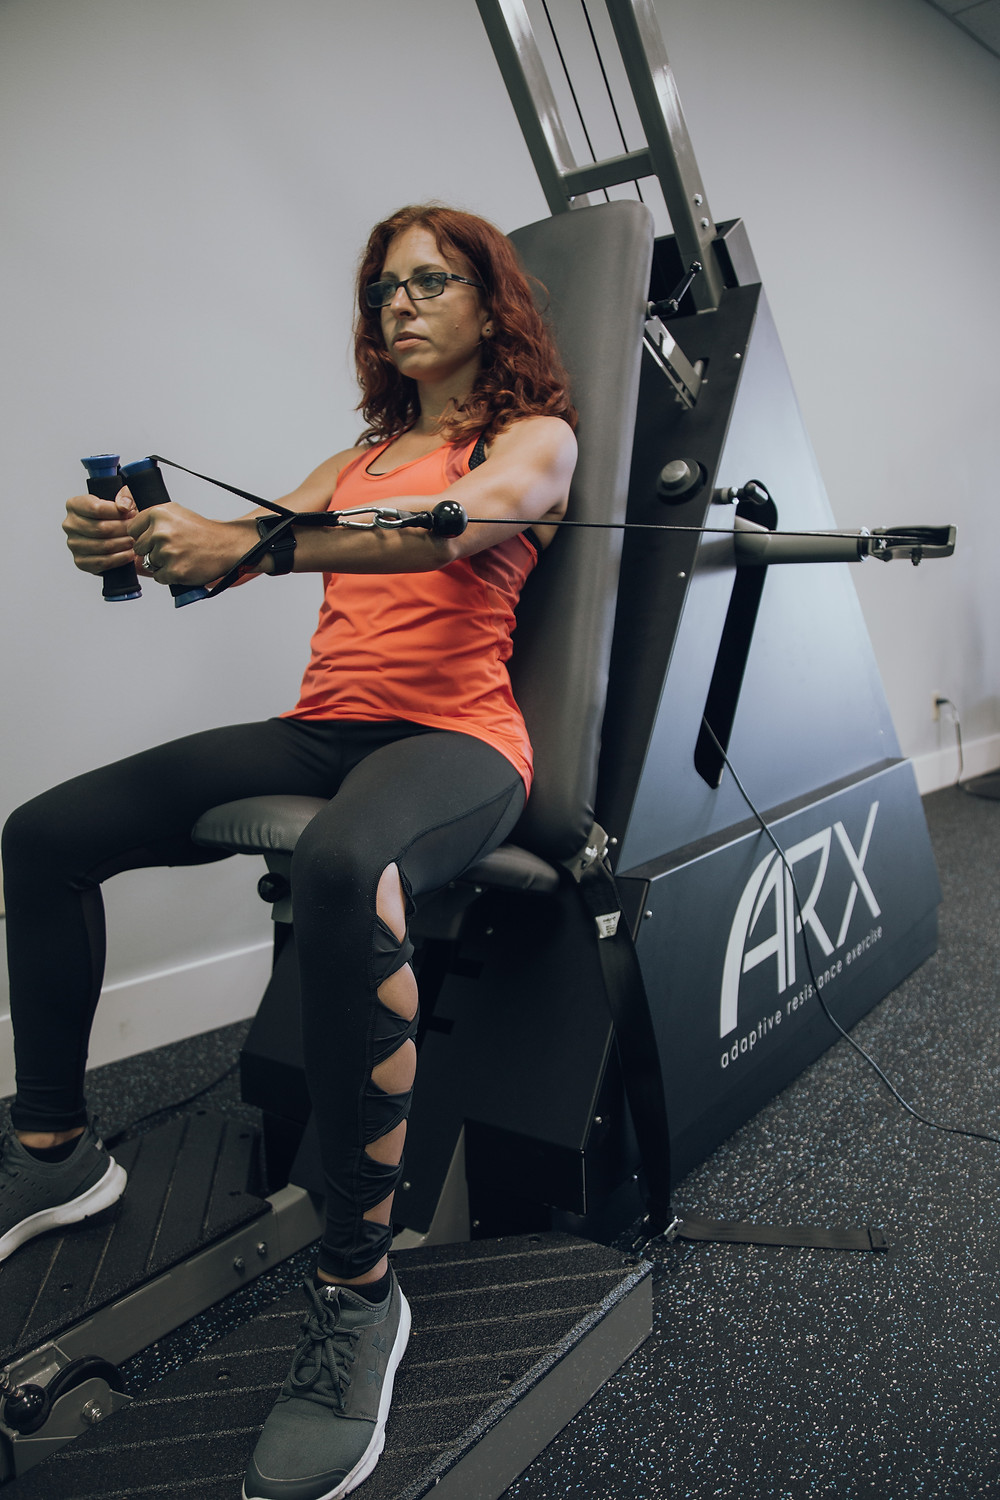 Strength training is extremely safe on the ARX Machines at Quick Fit Indiana